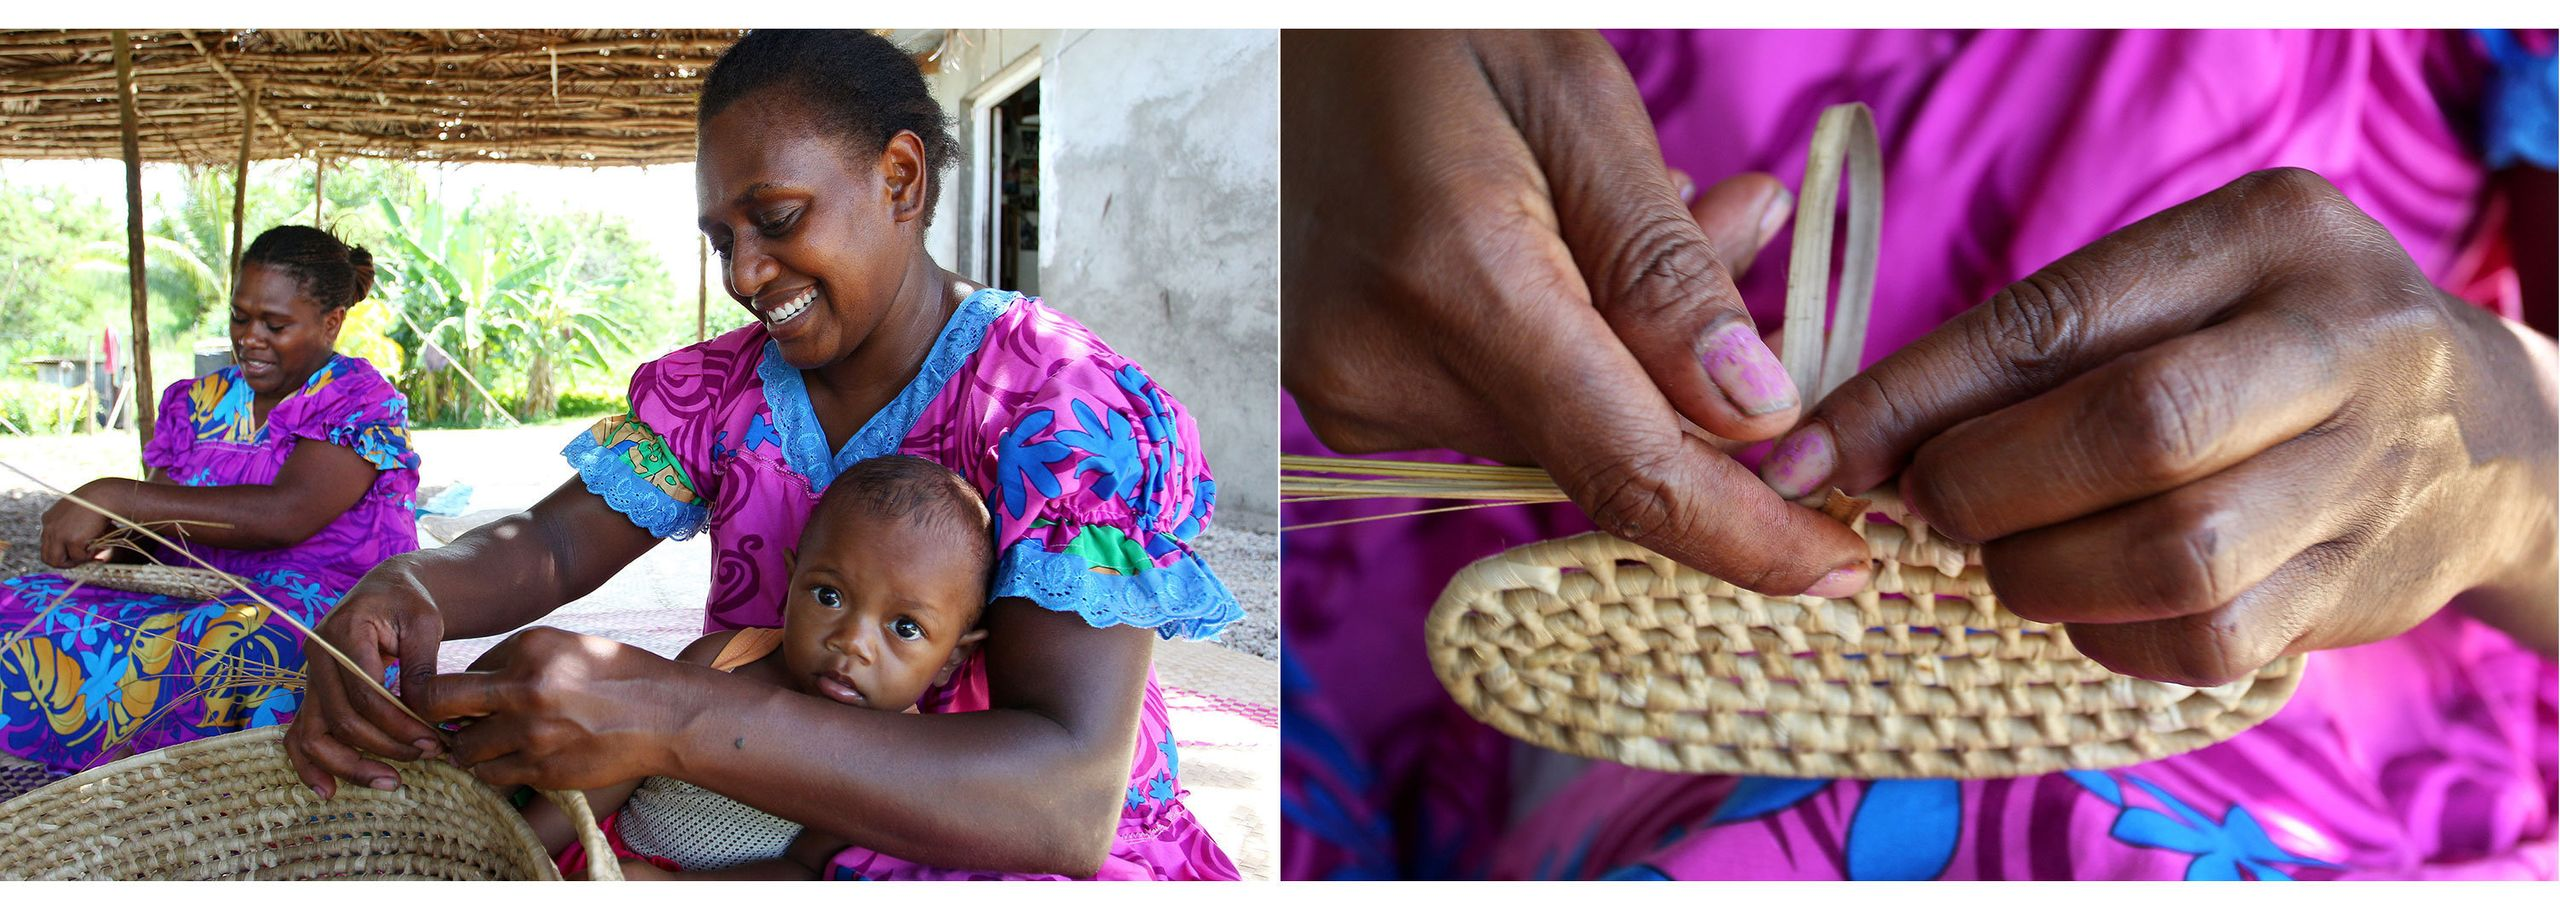 Local weavers Christina Lore (L) and Selina Kalsong (R), holding her grand-daughter Kylie, weave from pandanus leaves at thei